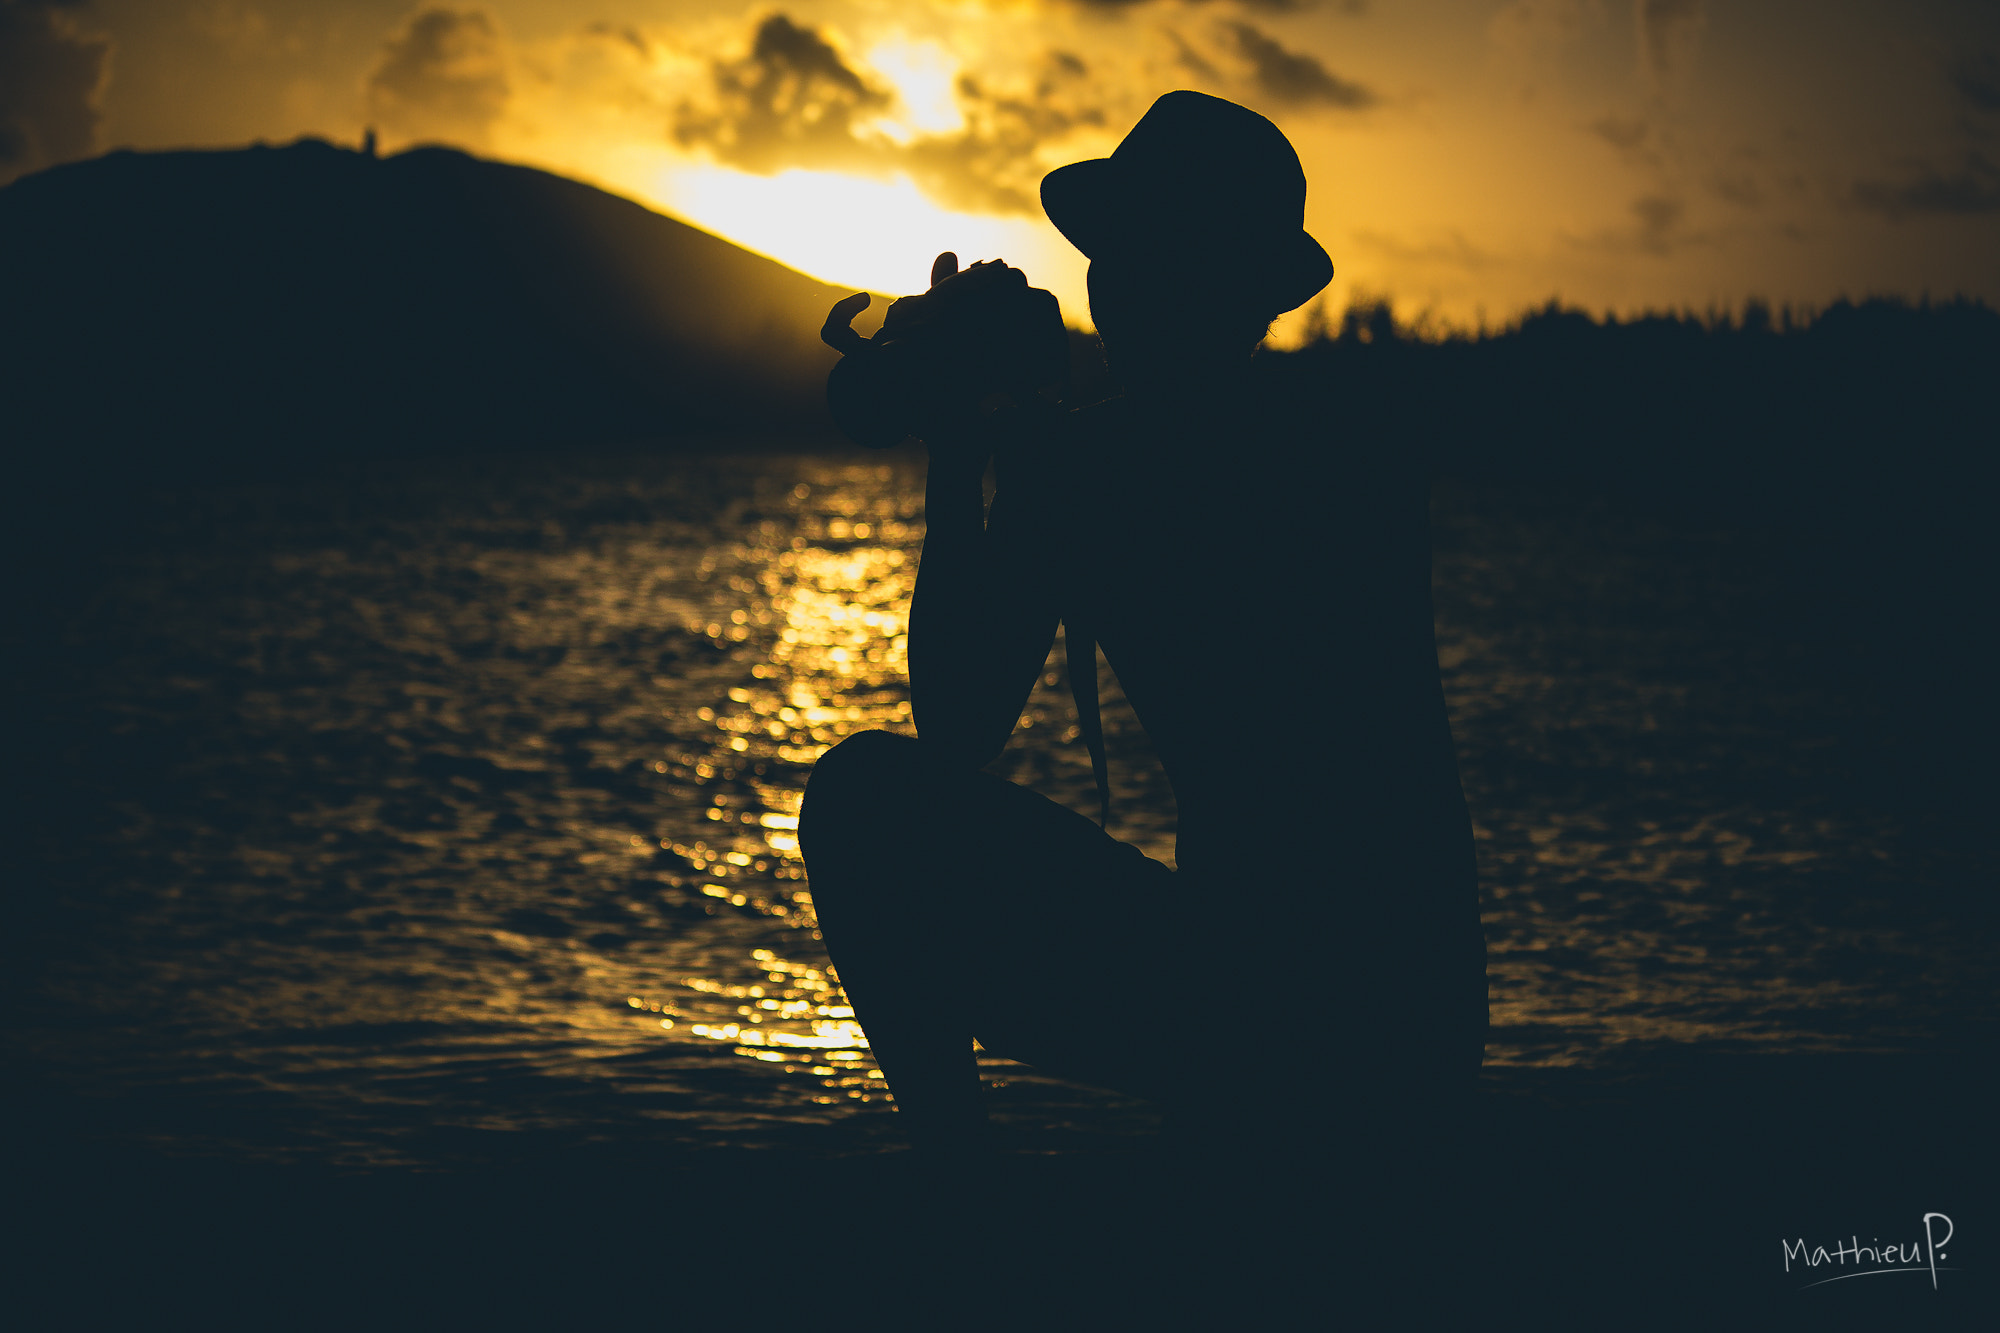 Photograph Sunset silhouette by Mathieu P. on 500px